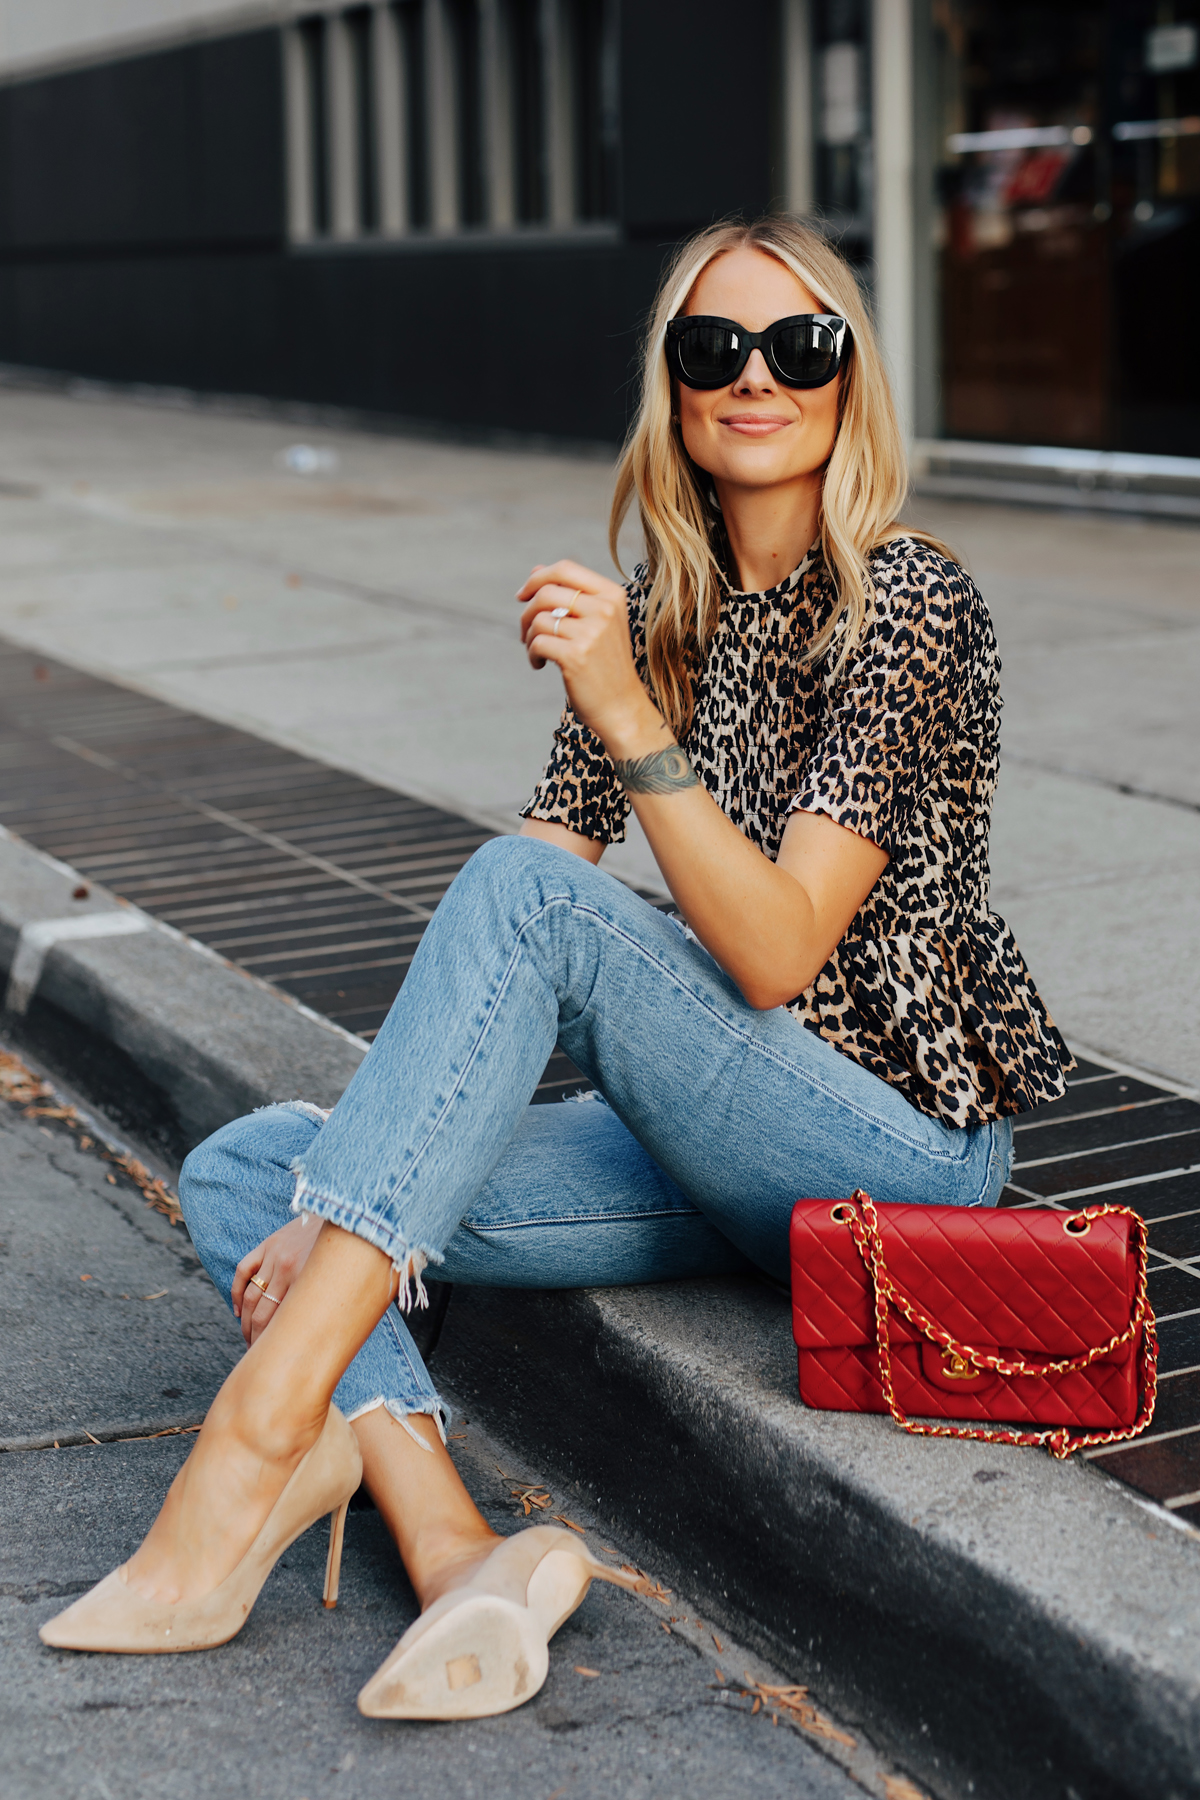 Fashion Jackson Wearing Ganni Leopard Peplum Top Levis Jeans Jimmy Choo BB Nude Pumps Chanel Classic Flap Red Handbag